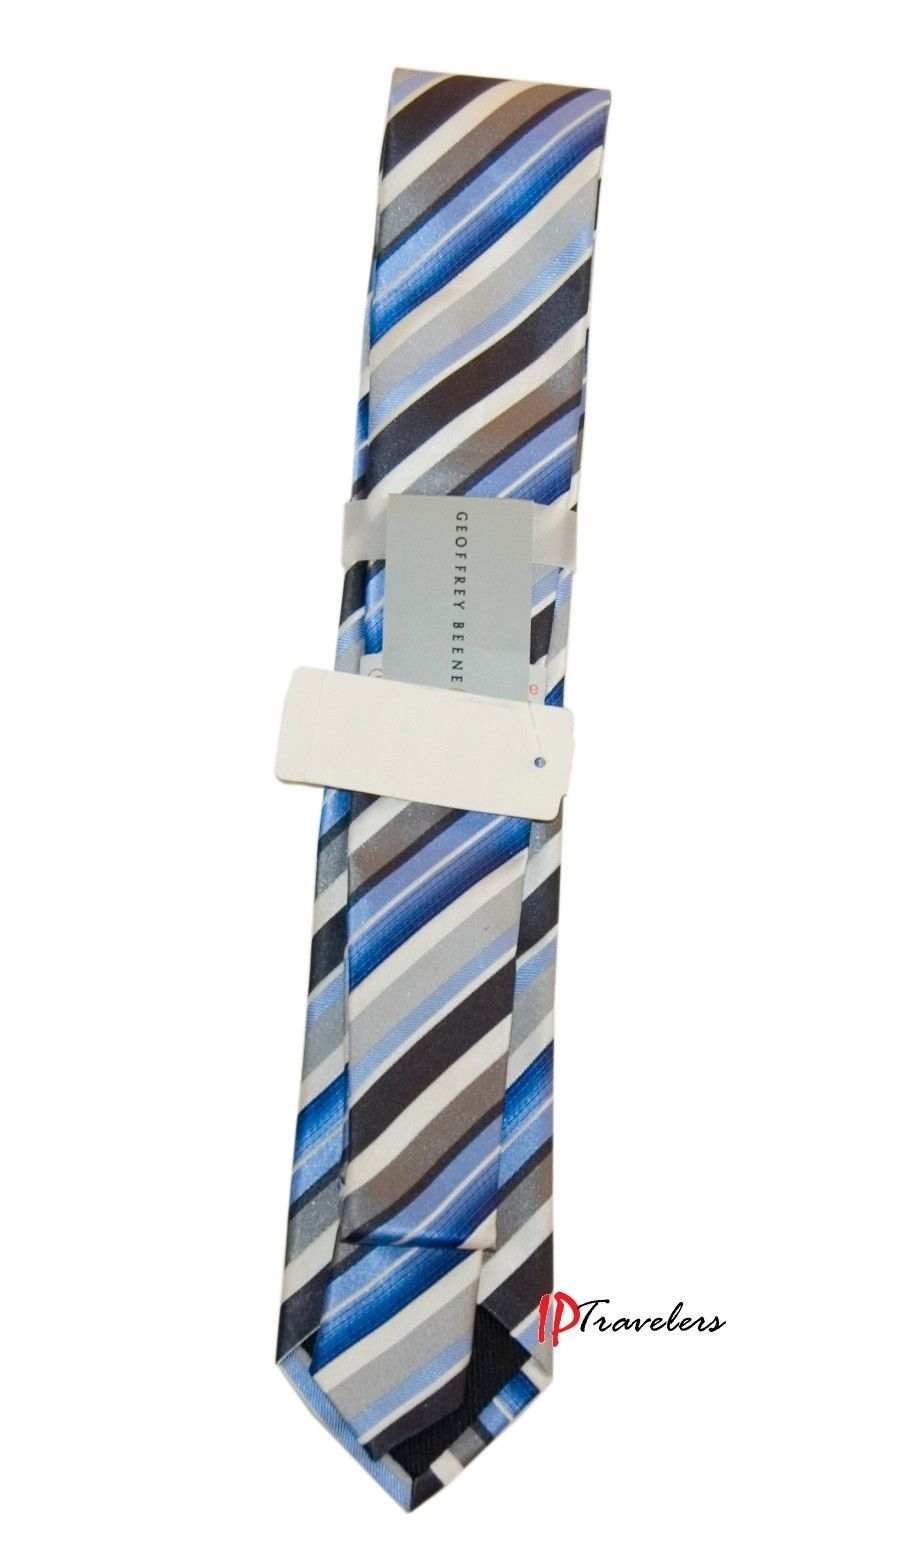 Geoffrey Beene Men's Neck Tie Slim Blue, Gray, Black and White Stripes 100% Silk image 2